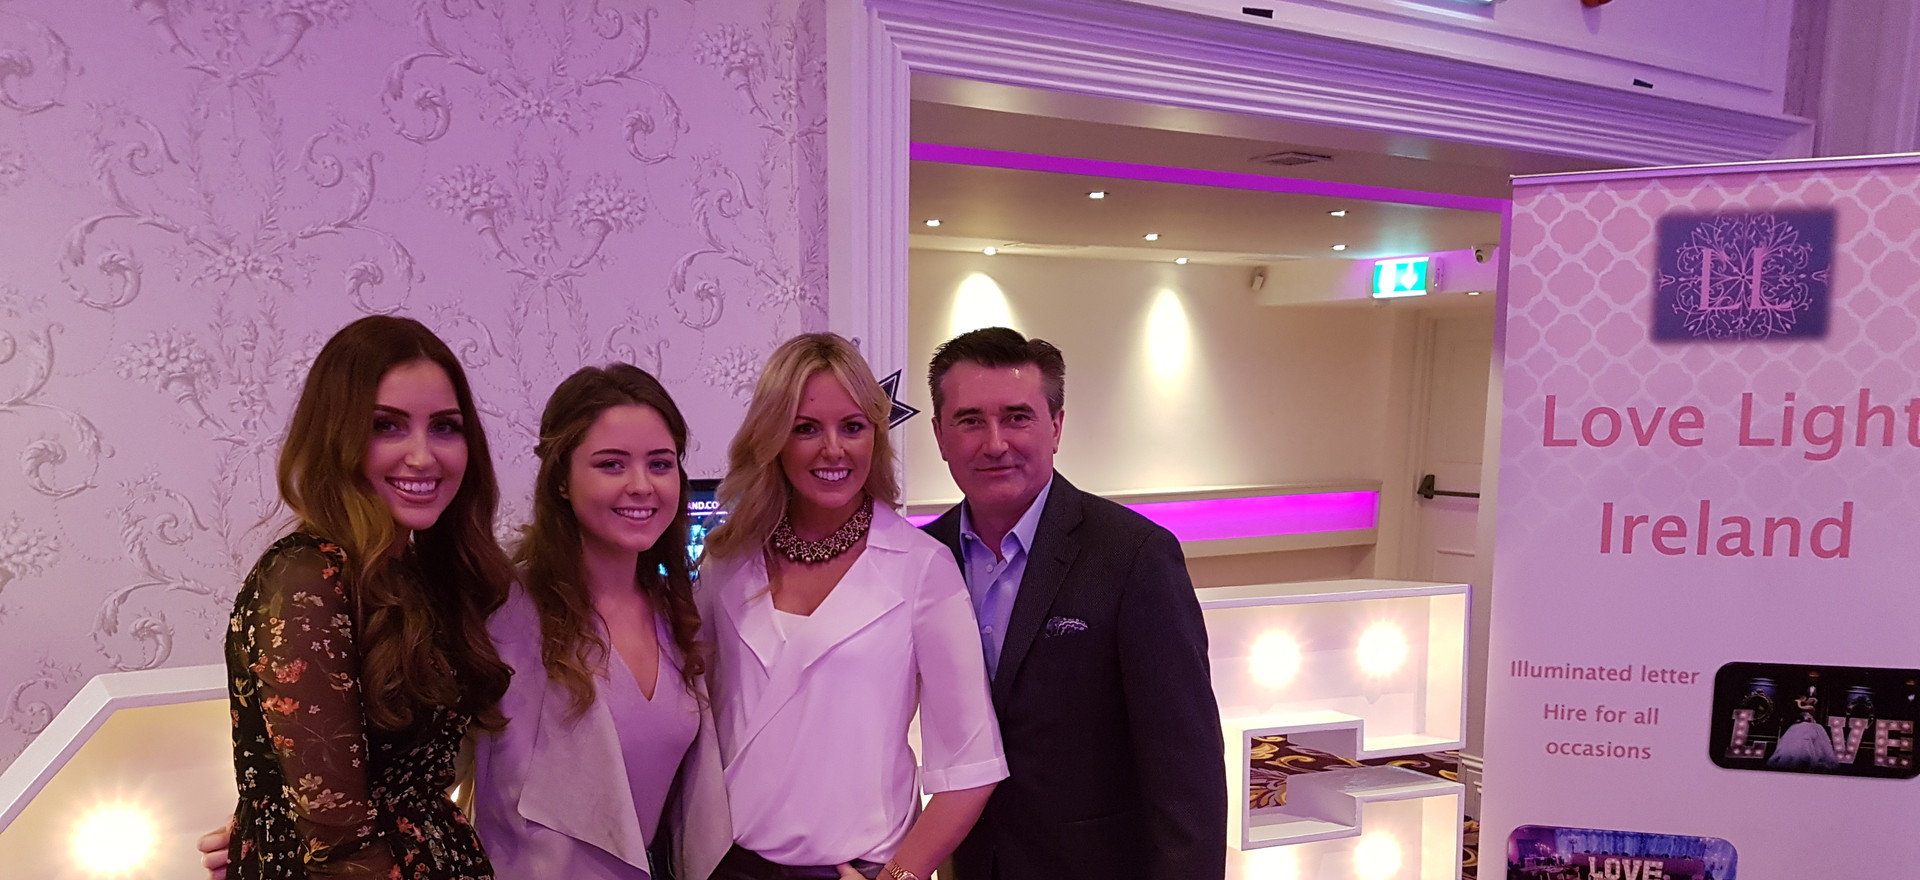 Our staff with the fantastic Tara O'Farrell MUA, Jenny McCarthy and Martin King